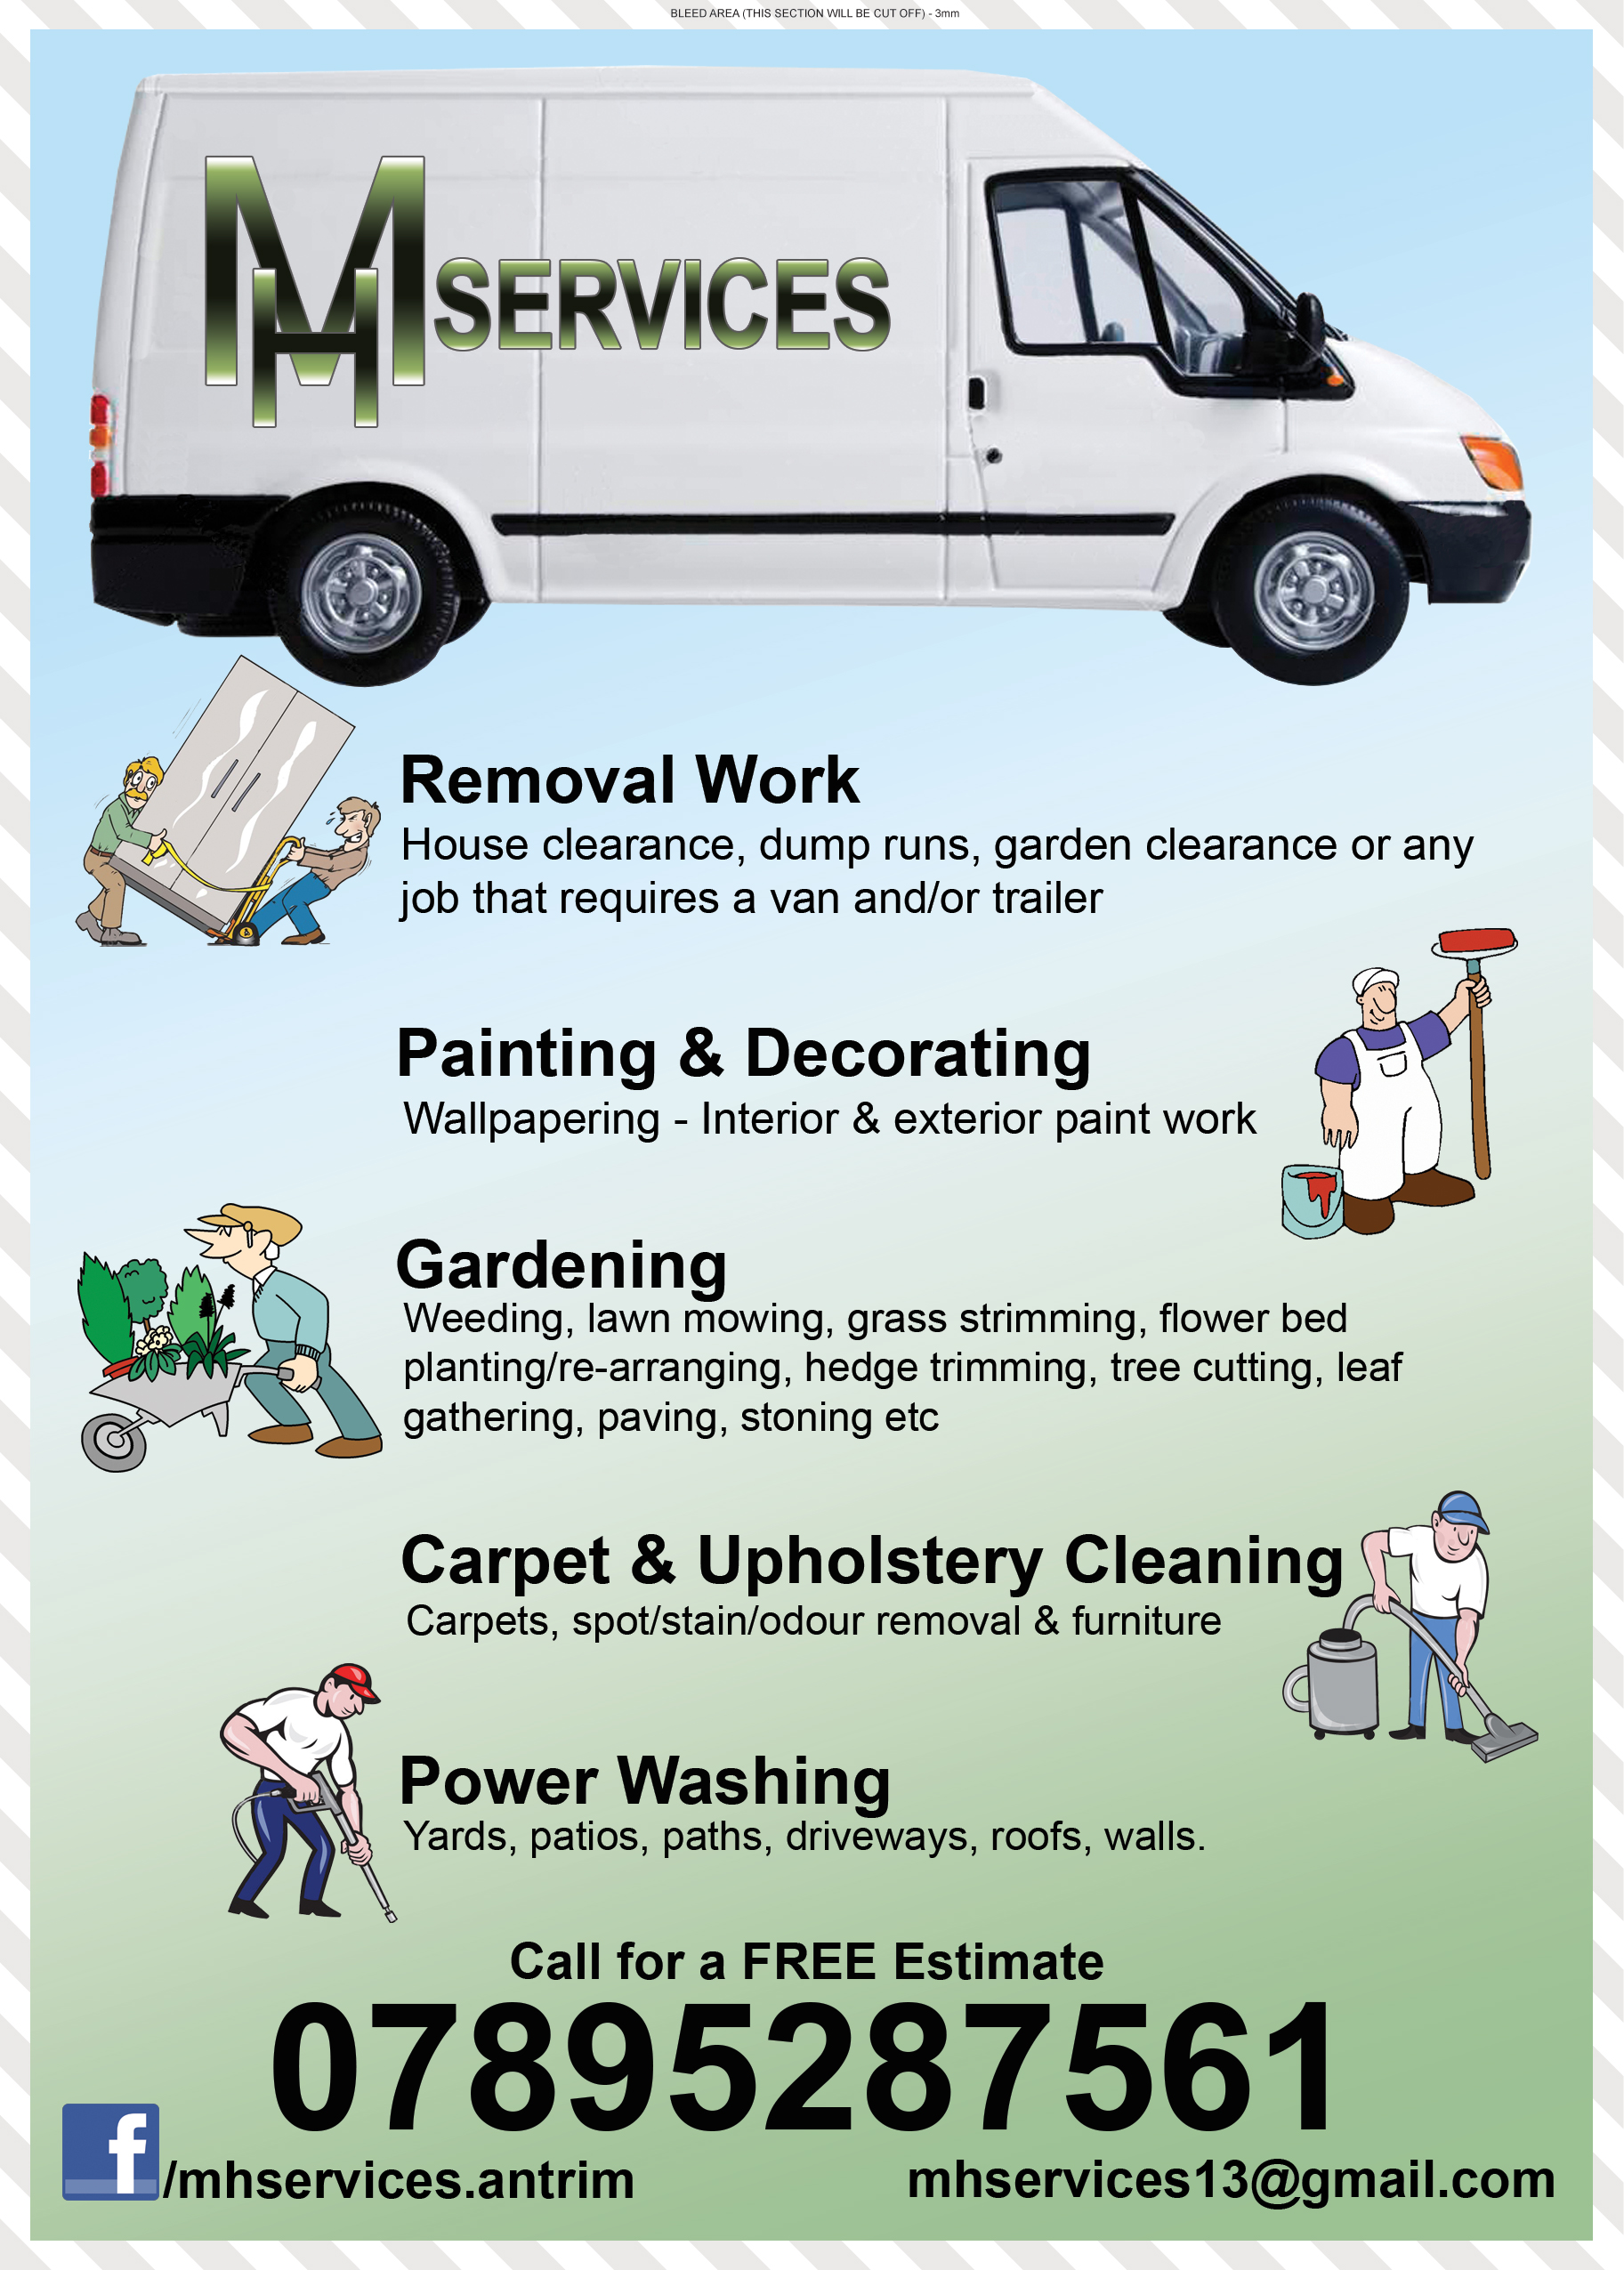 county antrim business directory business advertising for mh services are available for removal work house clearance dump runs garden clearance or any job that requires a van and or trailer garden